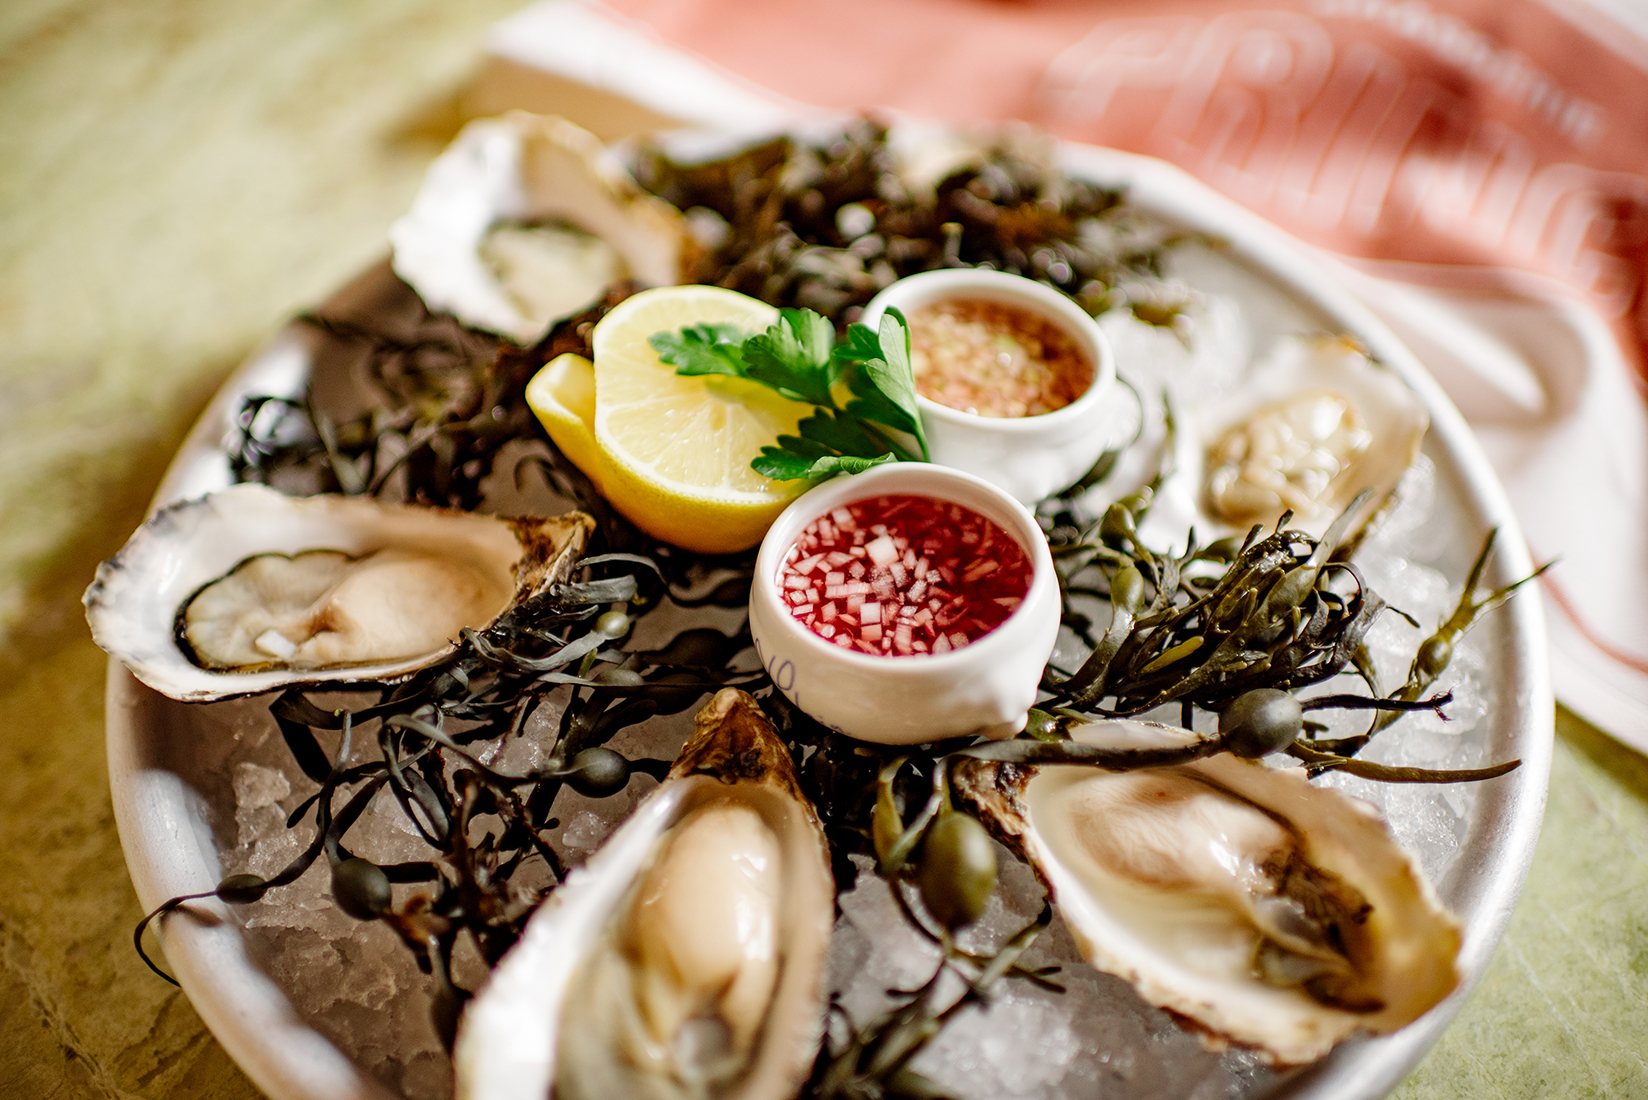 Brasserie Prince by Alain Roux - Daily catch of oysters026.jpg